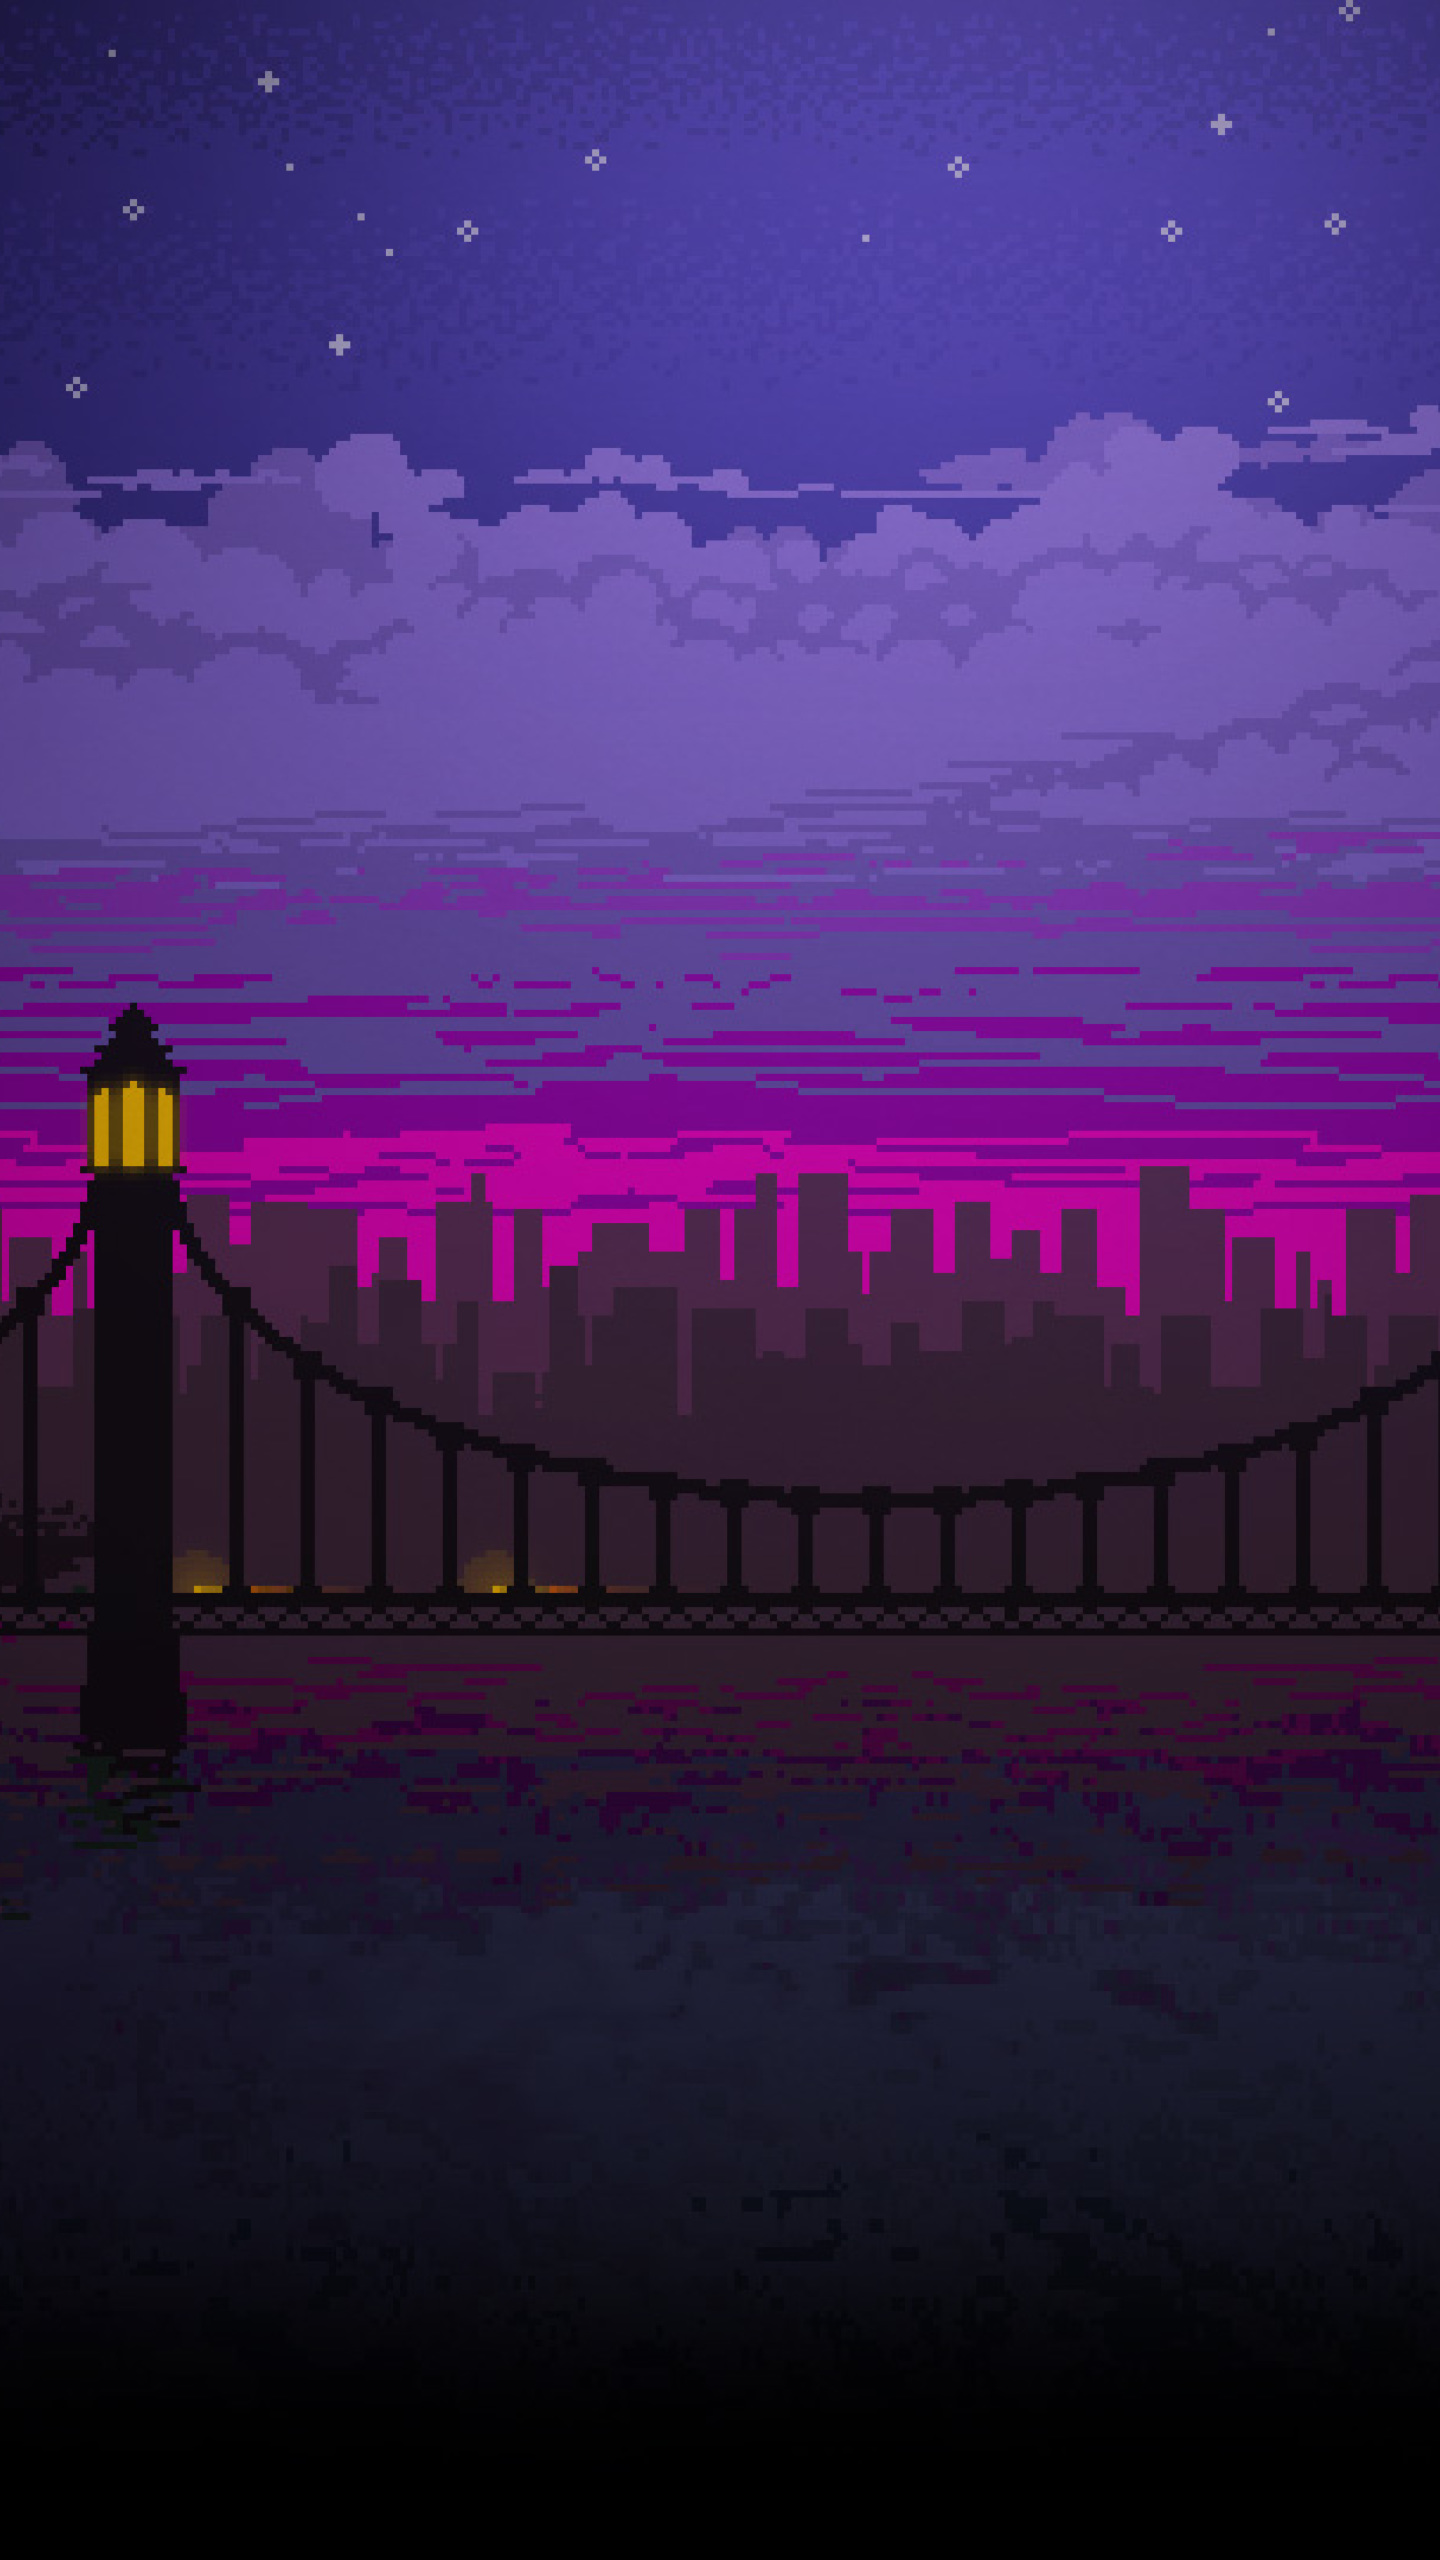 Xperia Wallpaper 1920x1080 Pixel Art Bridge Night...